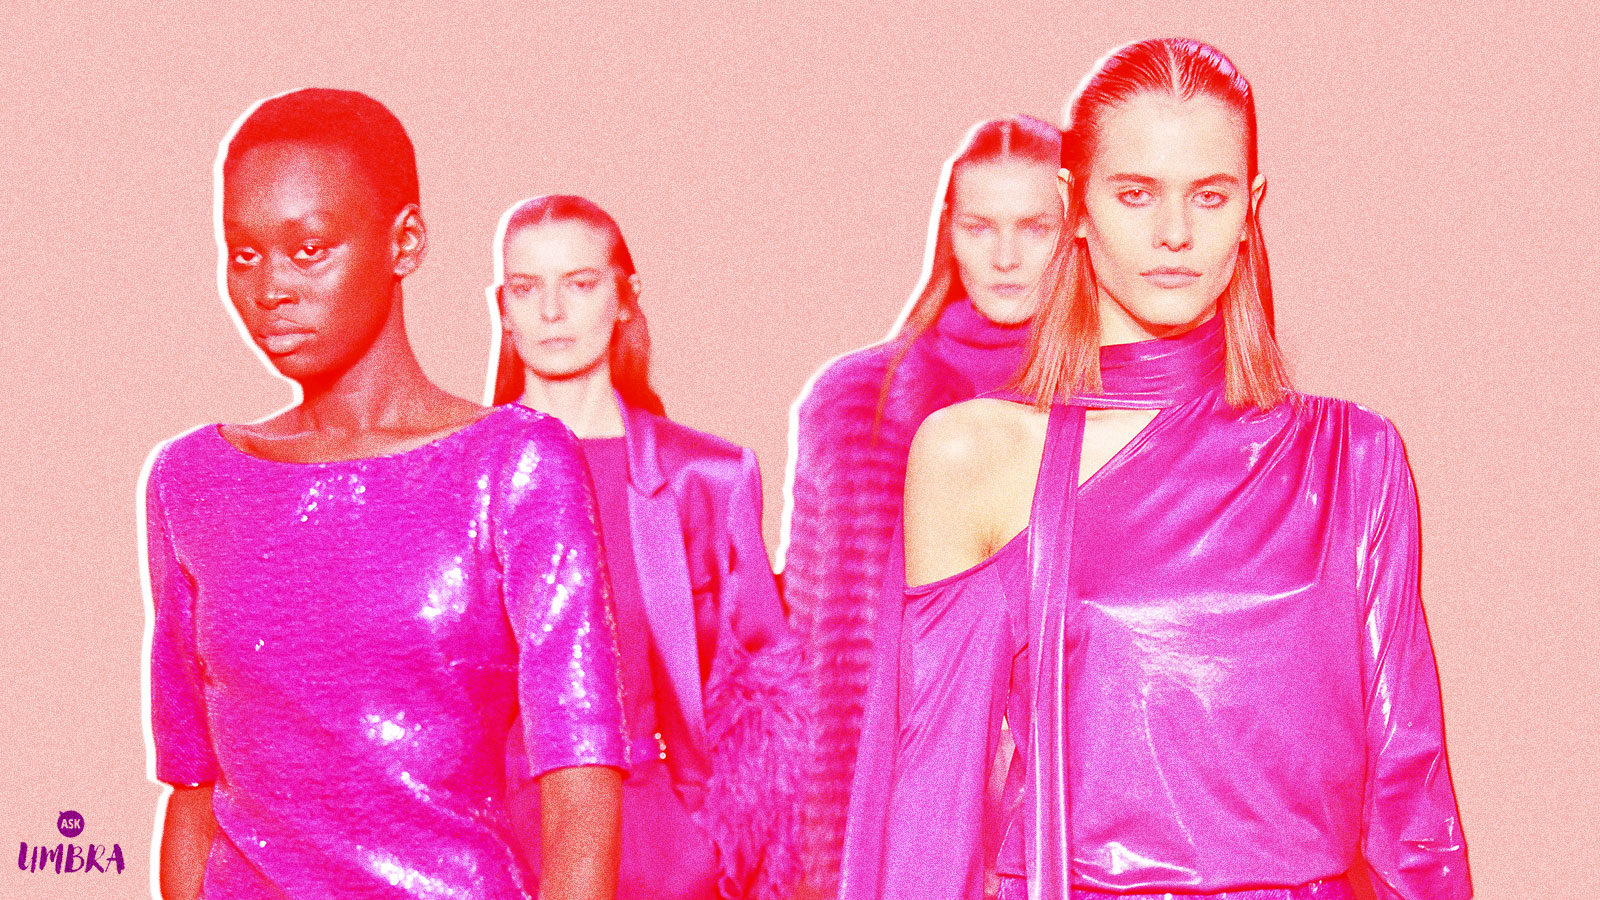 Three white models and one black model against a pink background